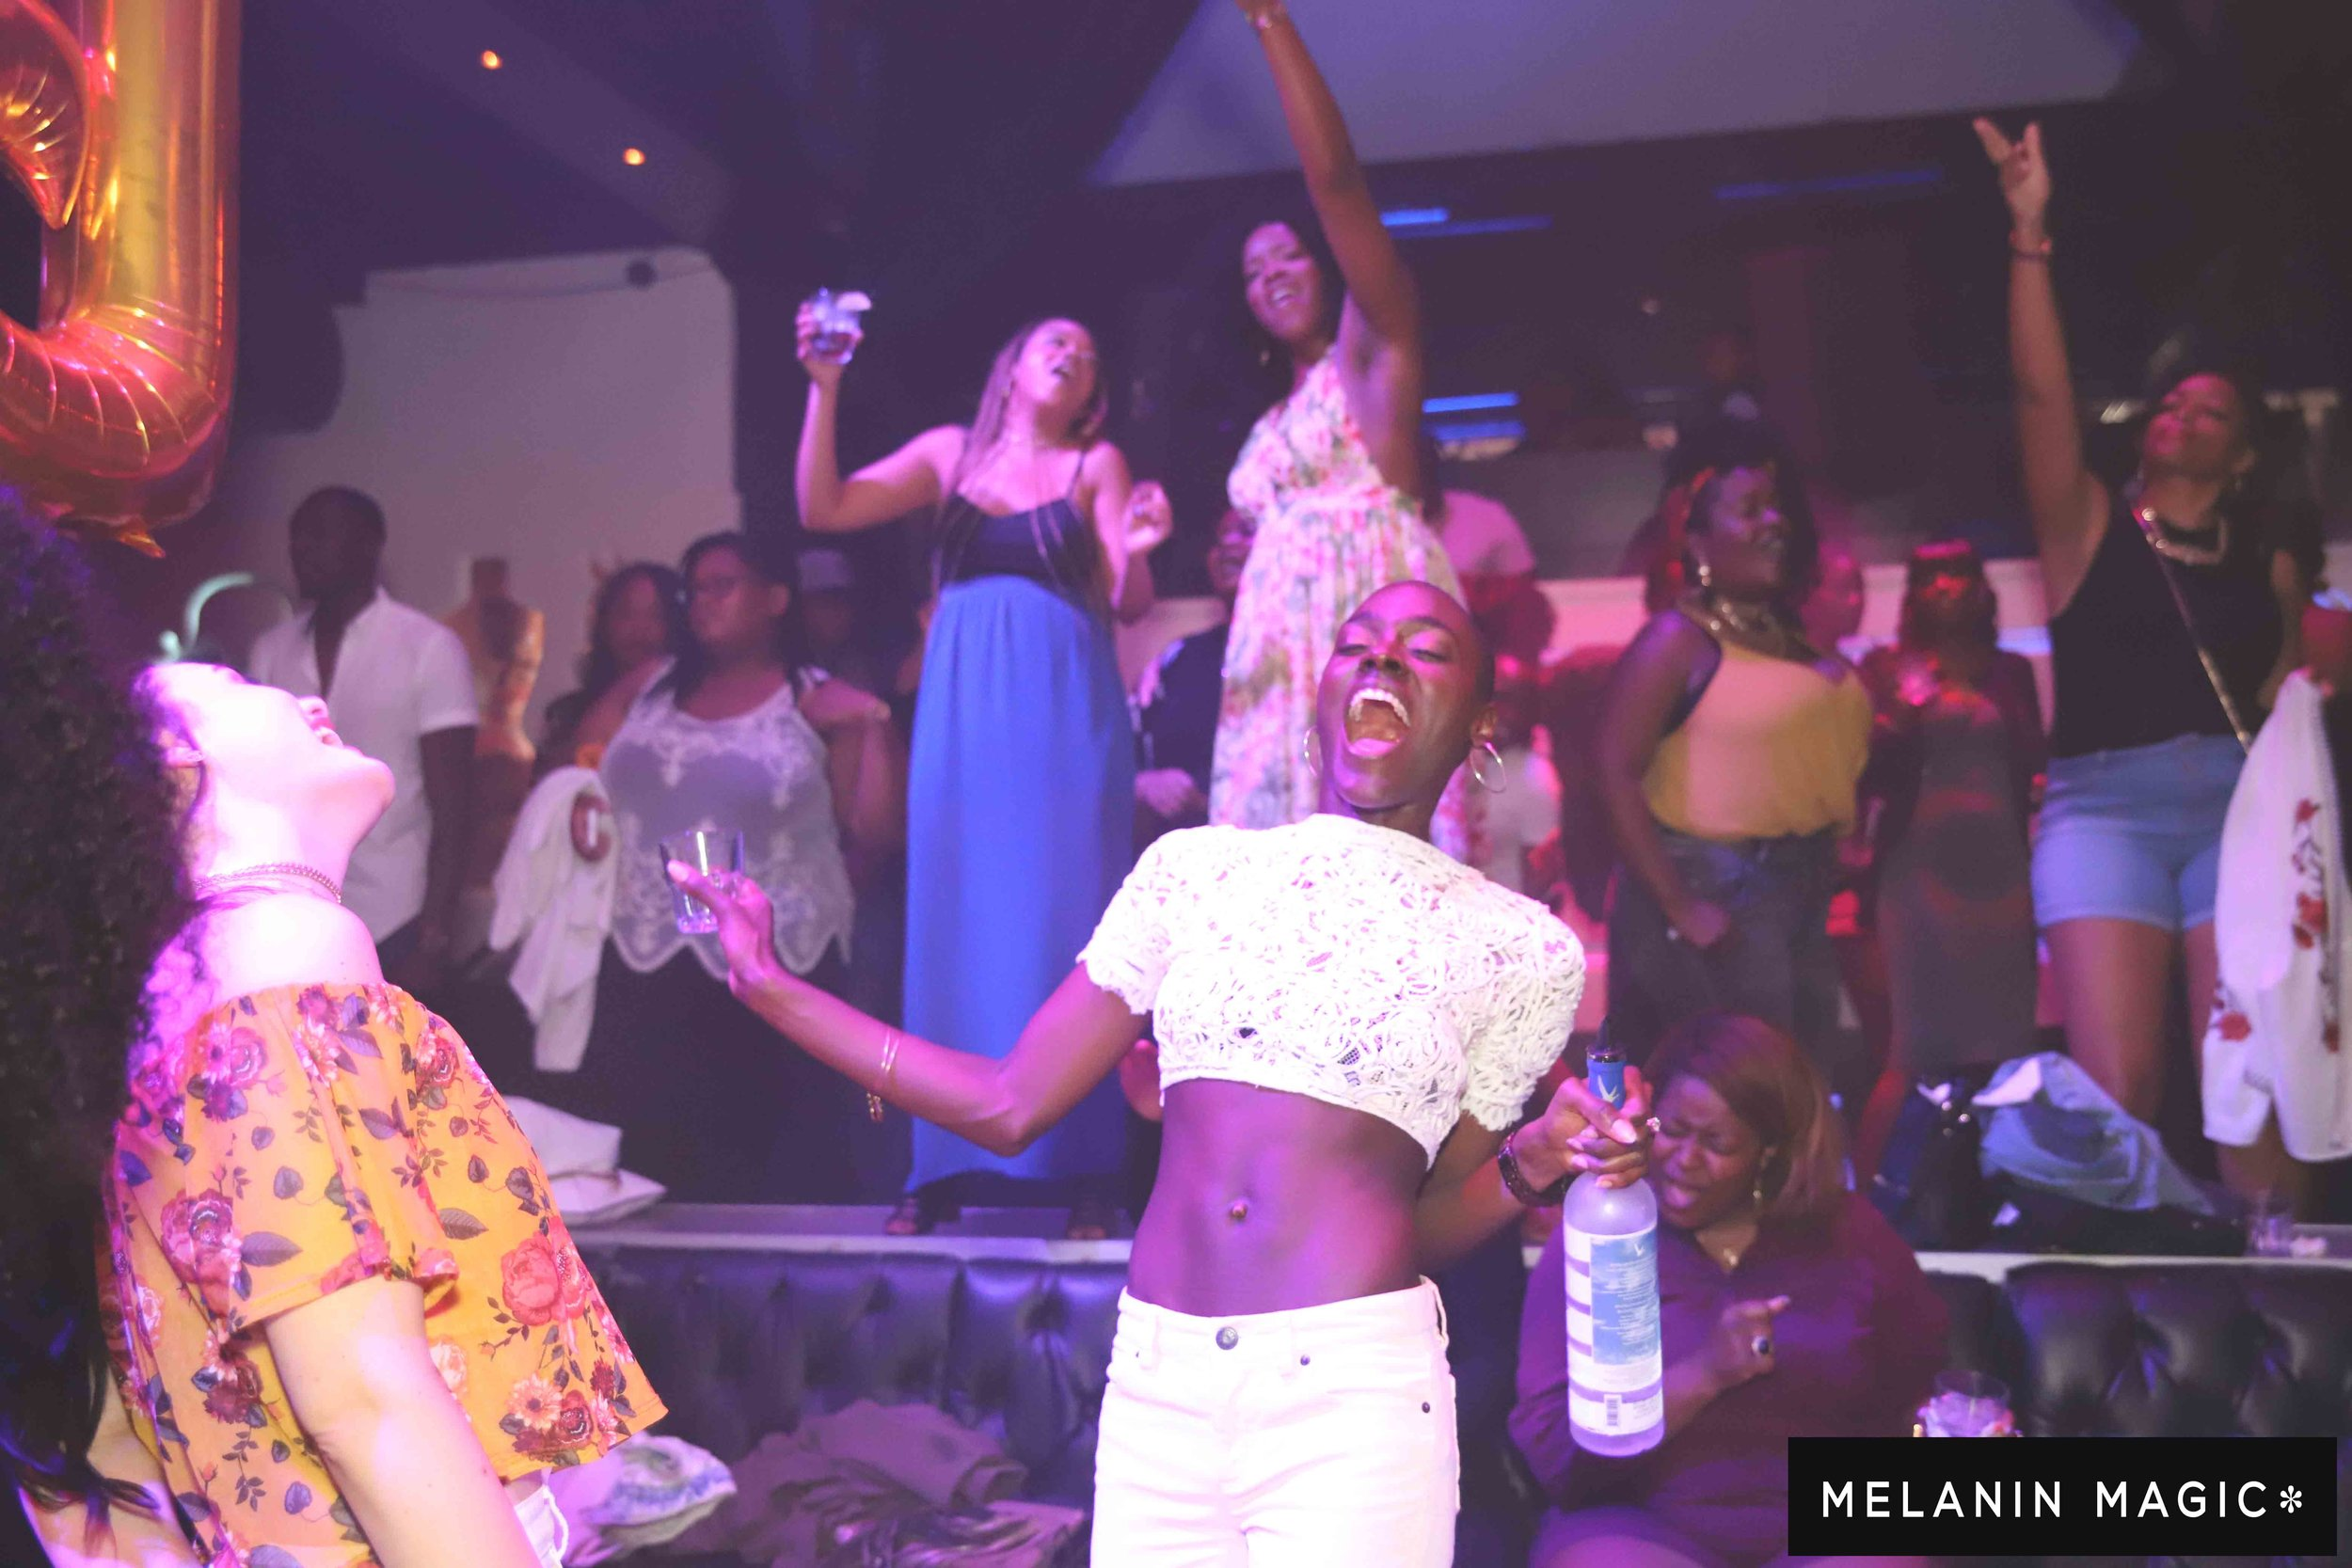 MELANIN MAGIC | The Party  (1/3)